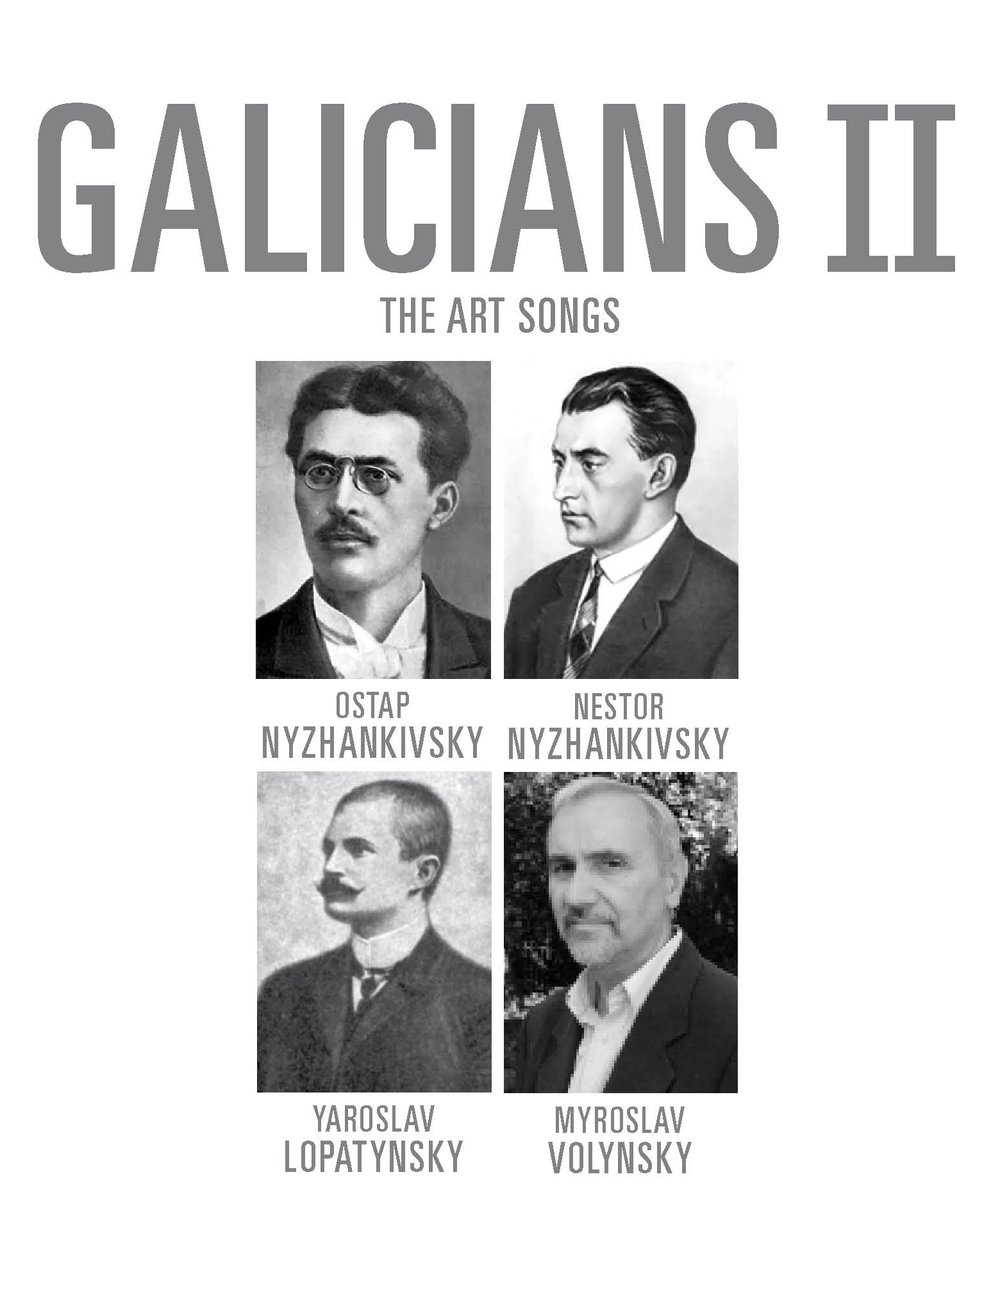 galicians ll working cover4.jpg